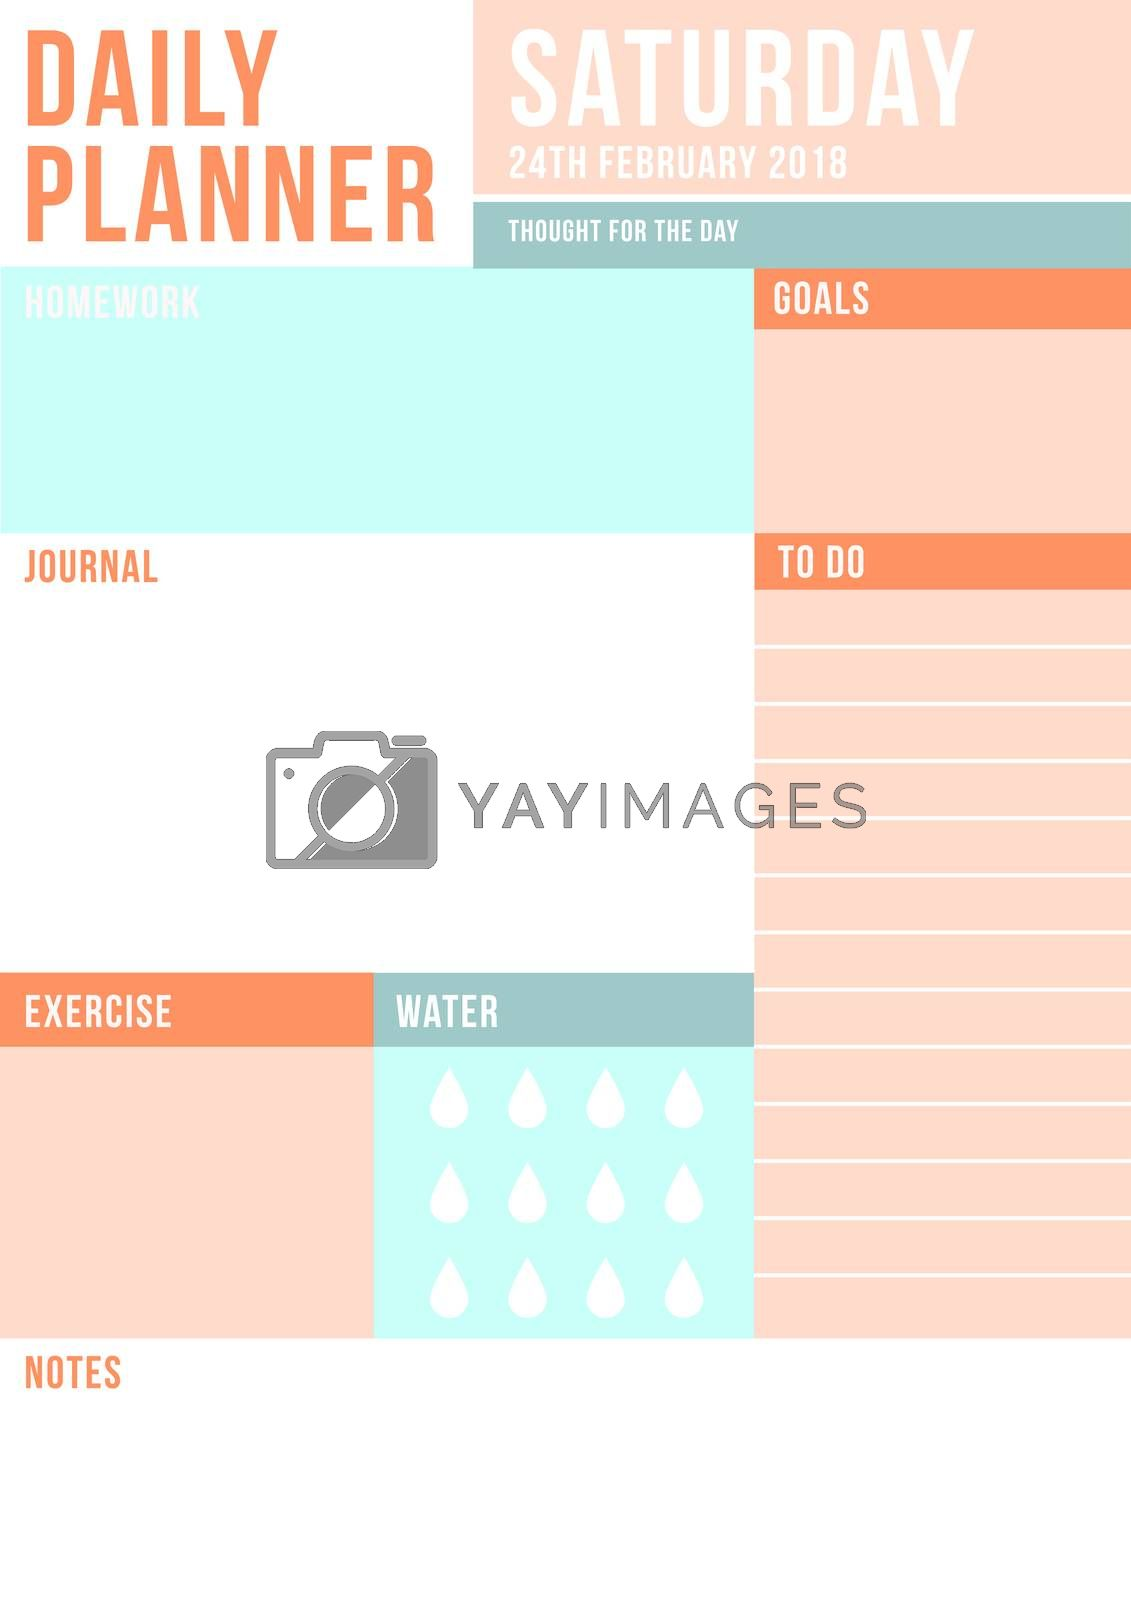 Daily planner template by Wavebreakmedia